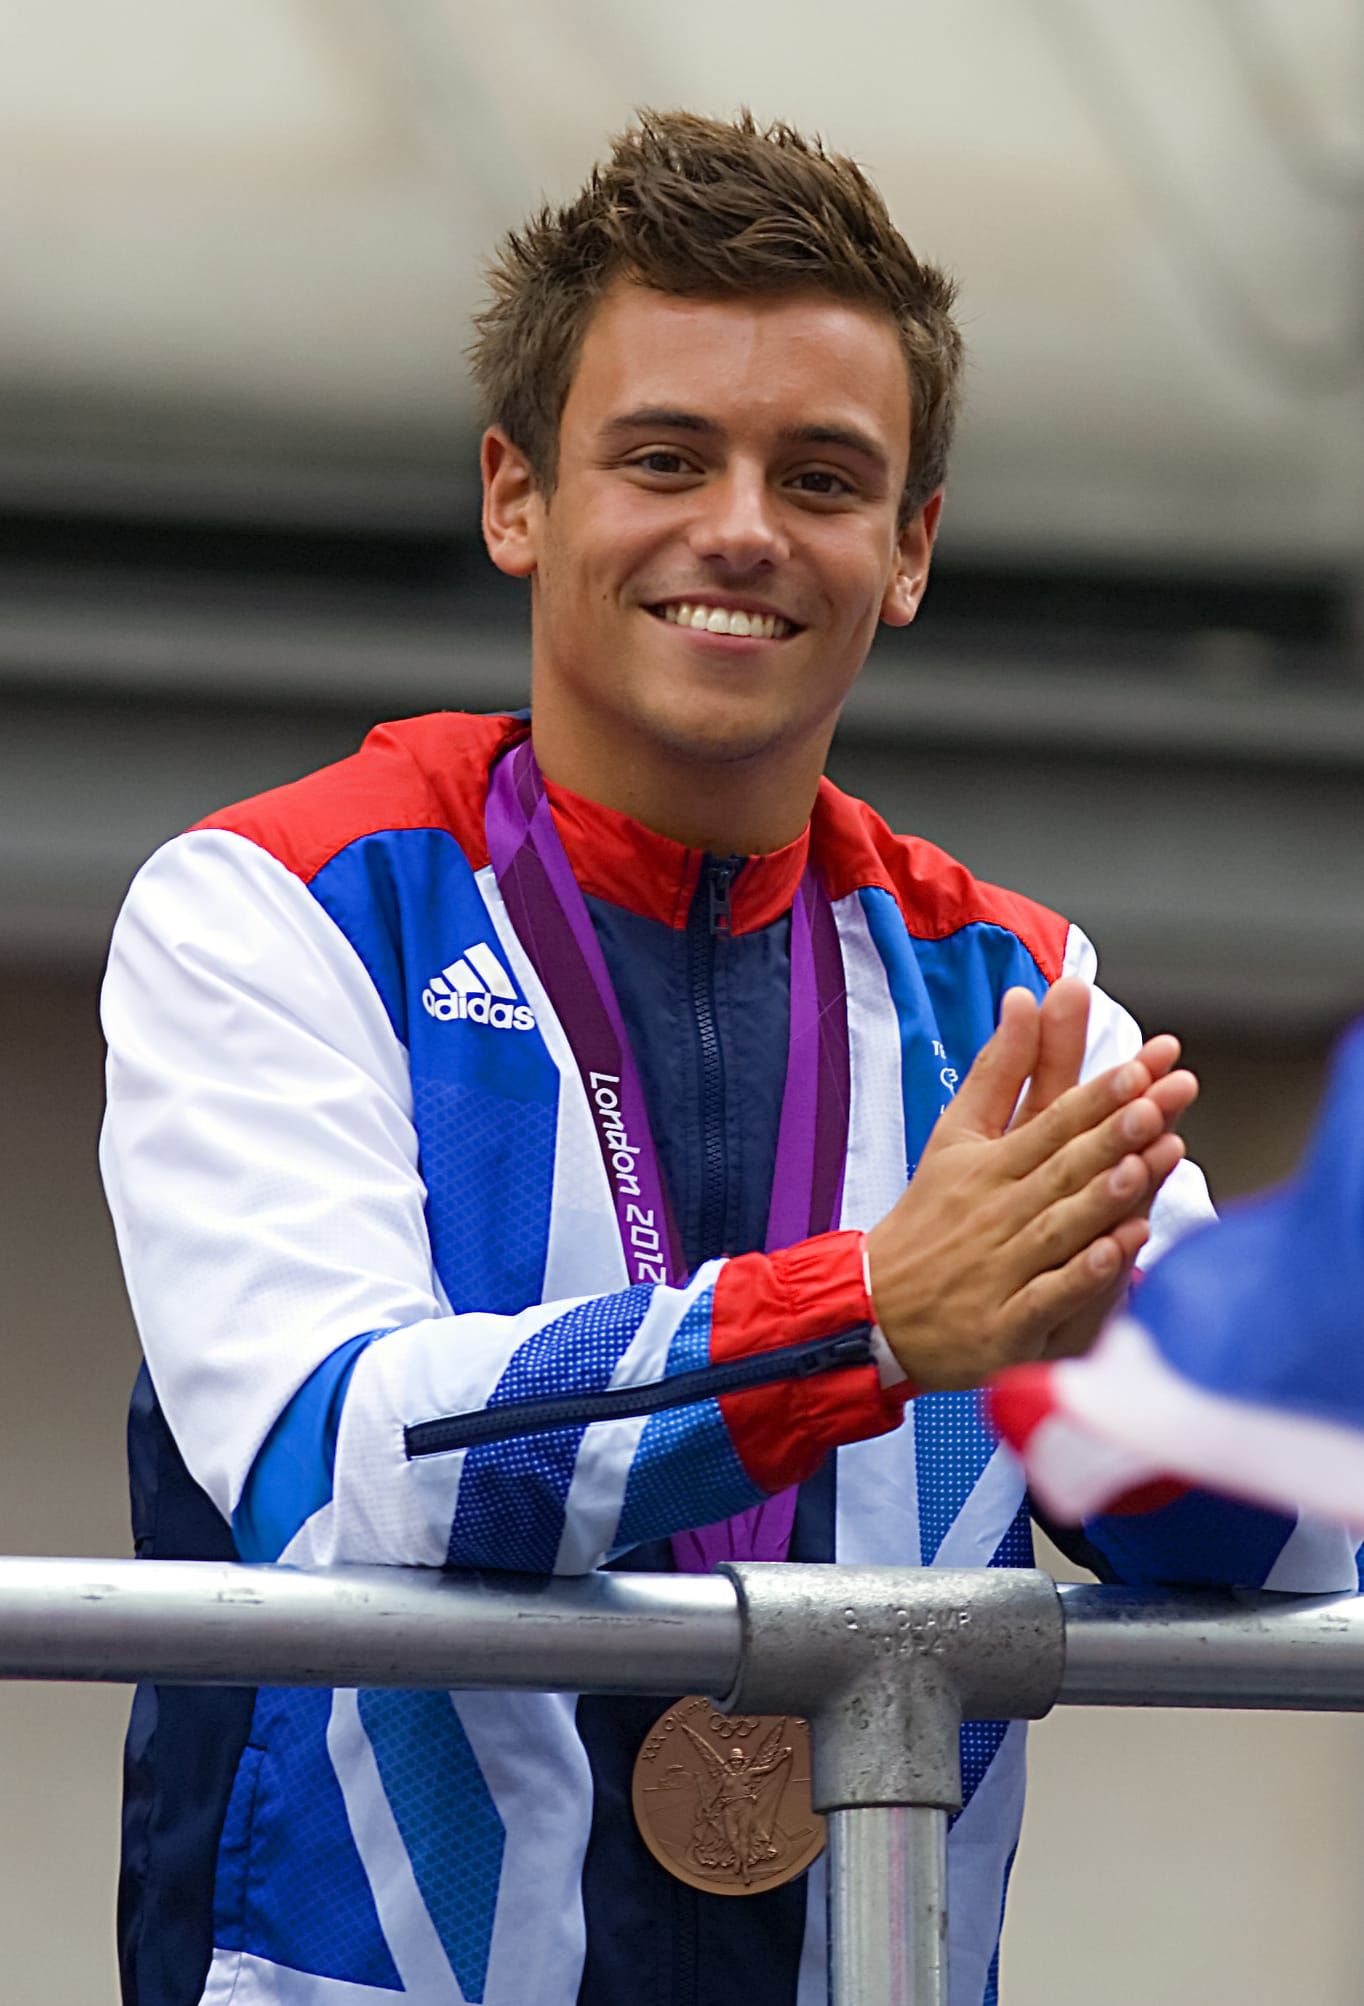 Tom_Daley_London_(cropped)